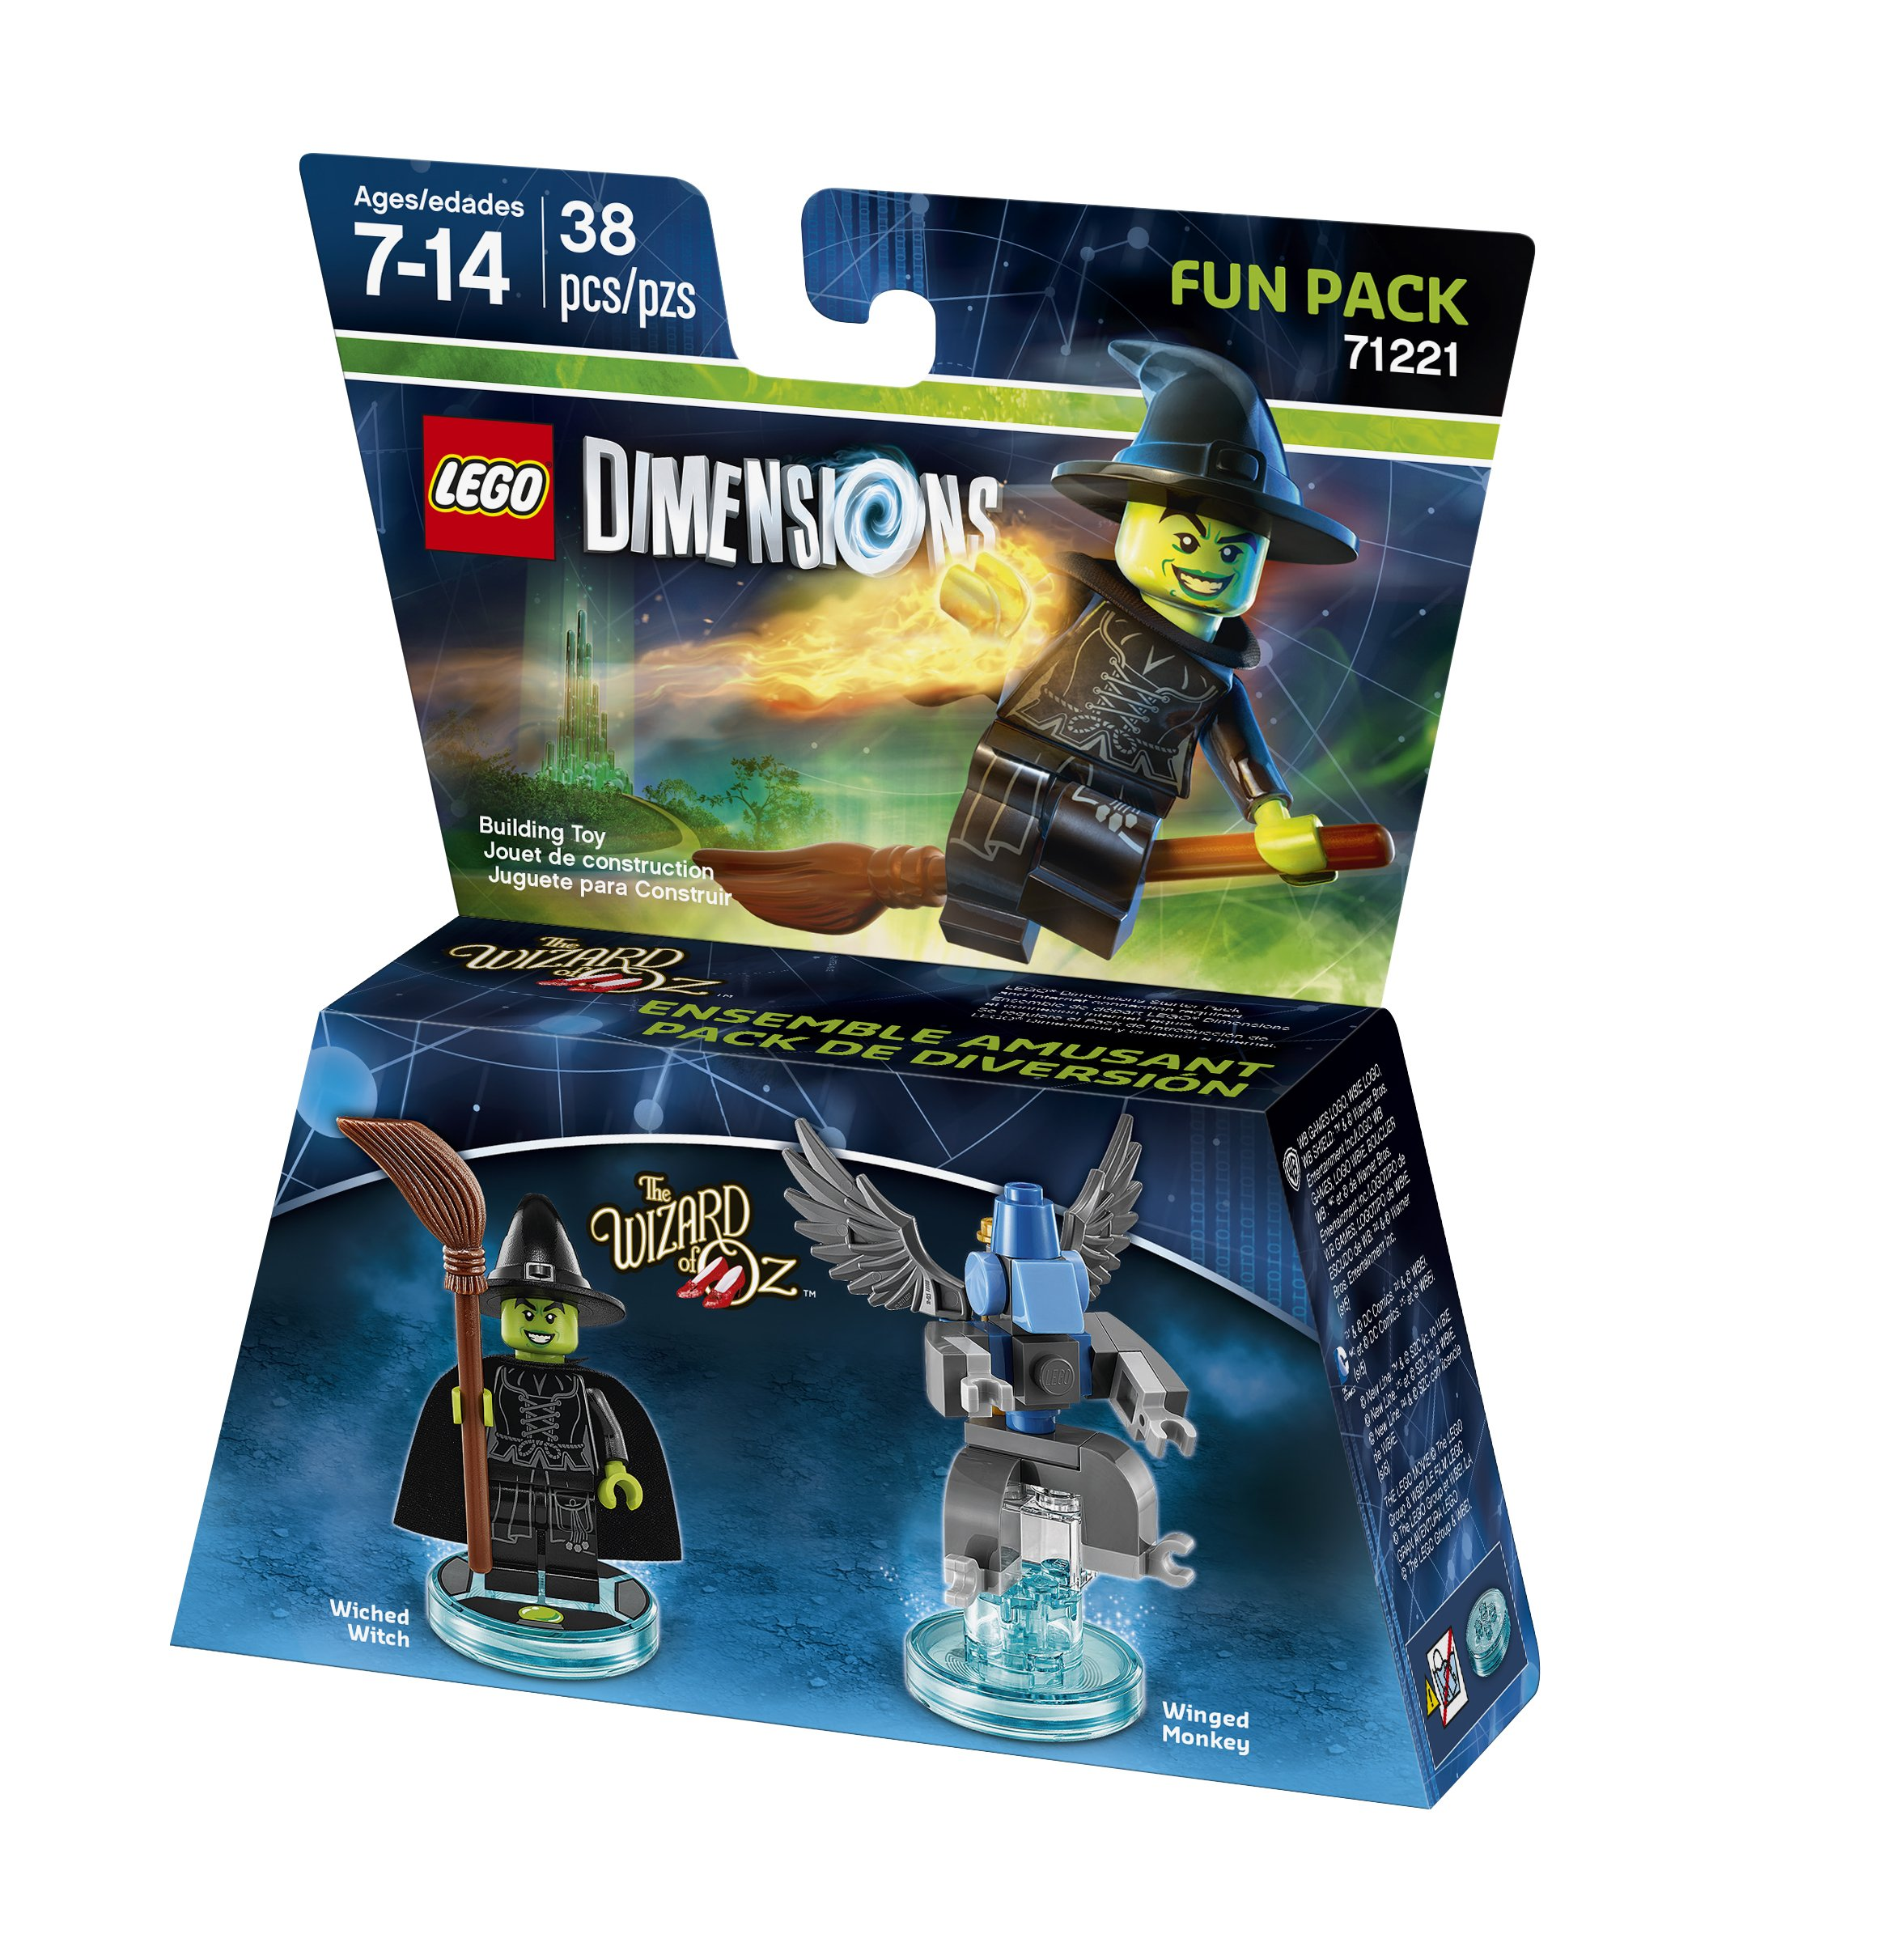 Wizard of Oz Wicked Witch Fun Pack - LEGO Dimensions by Warner Home Video - Games: Amazon.es: Videojuegos